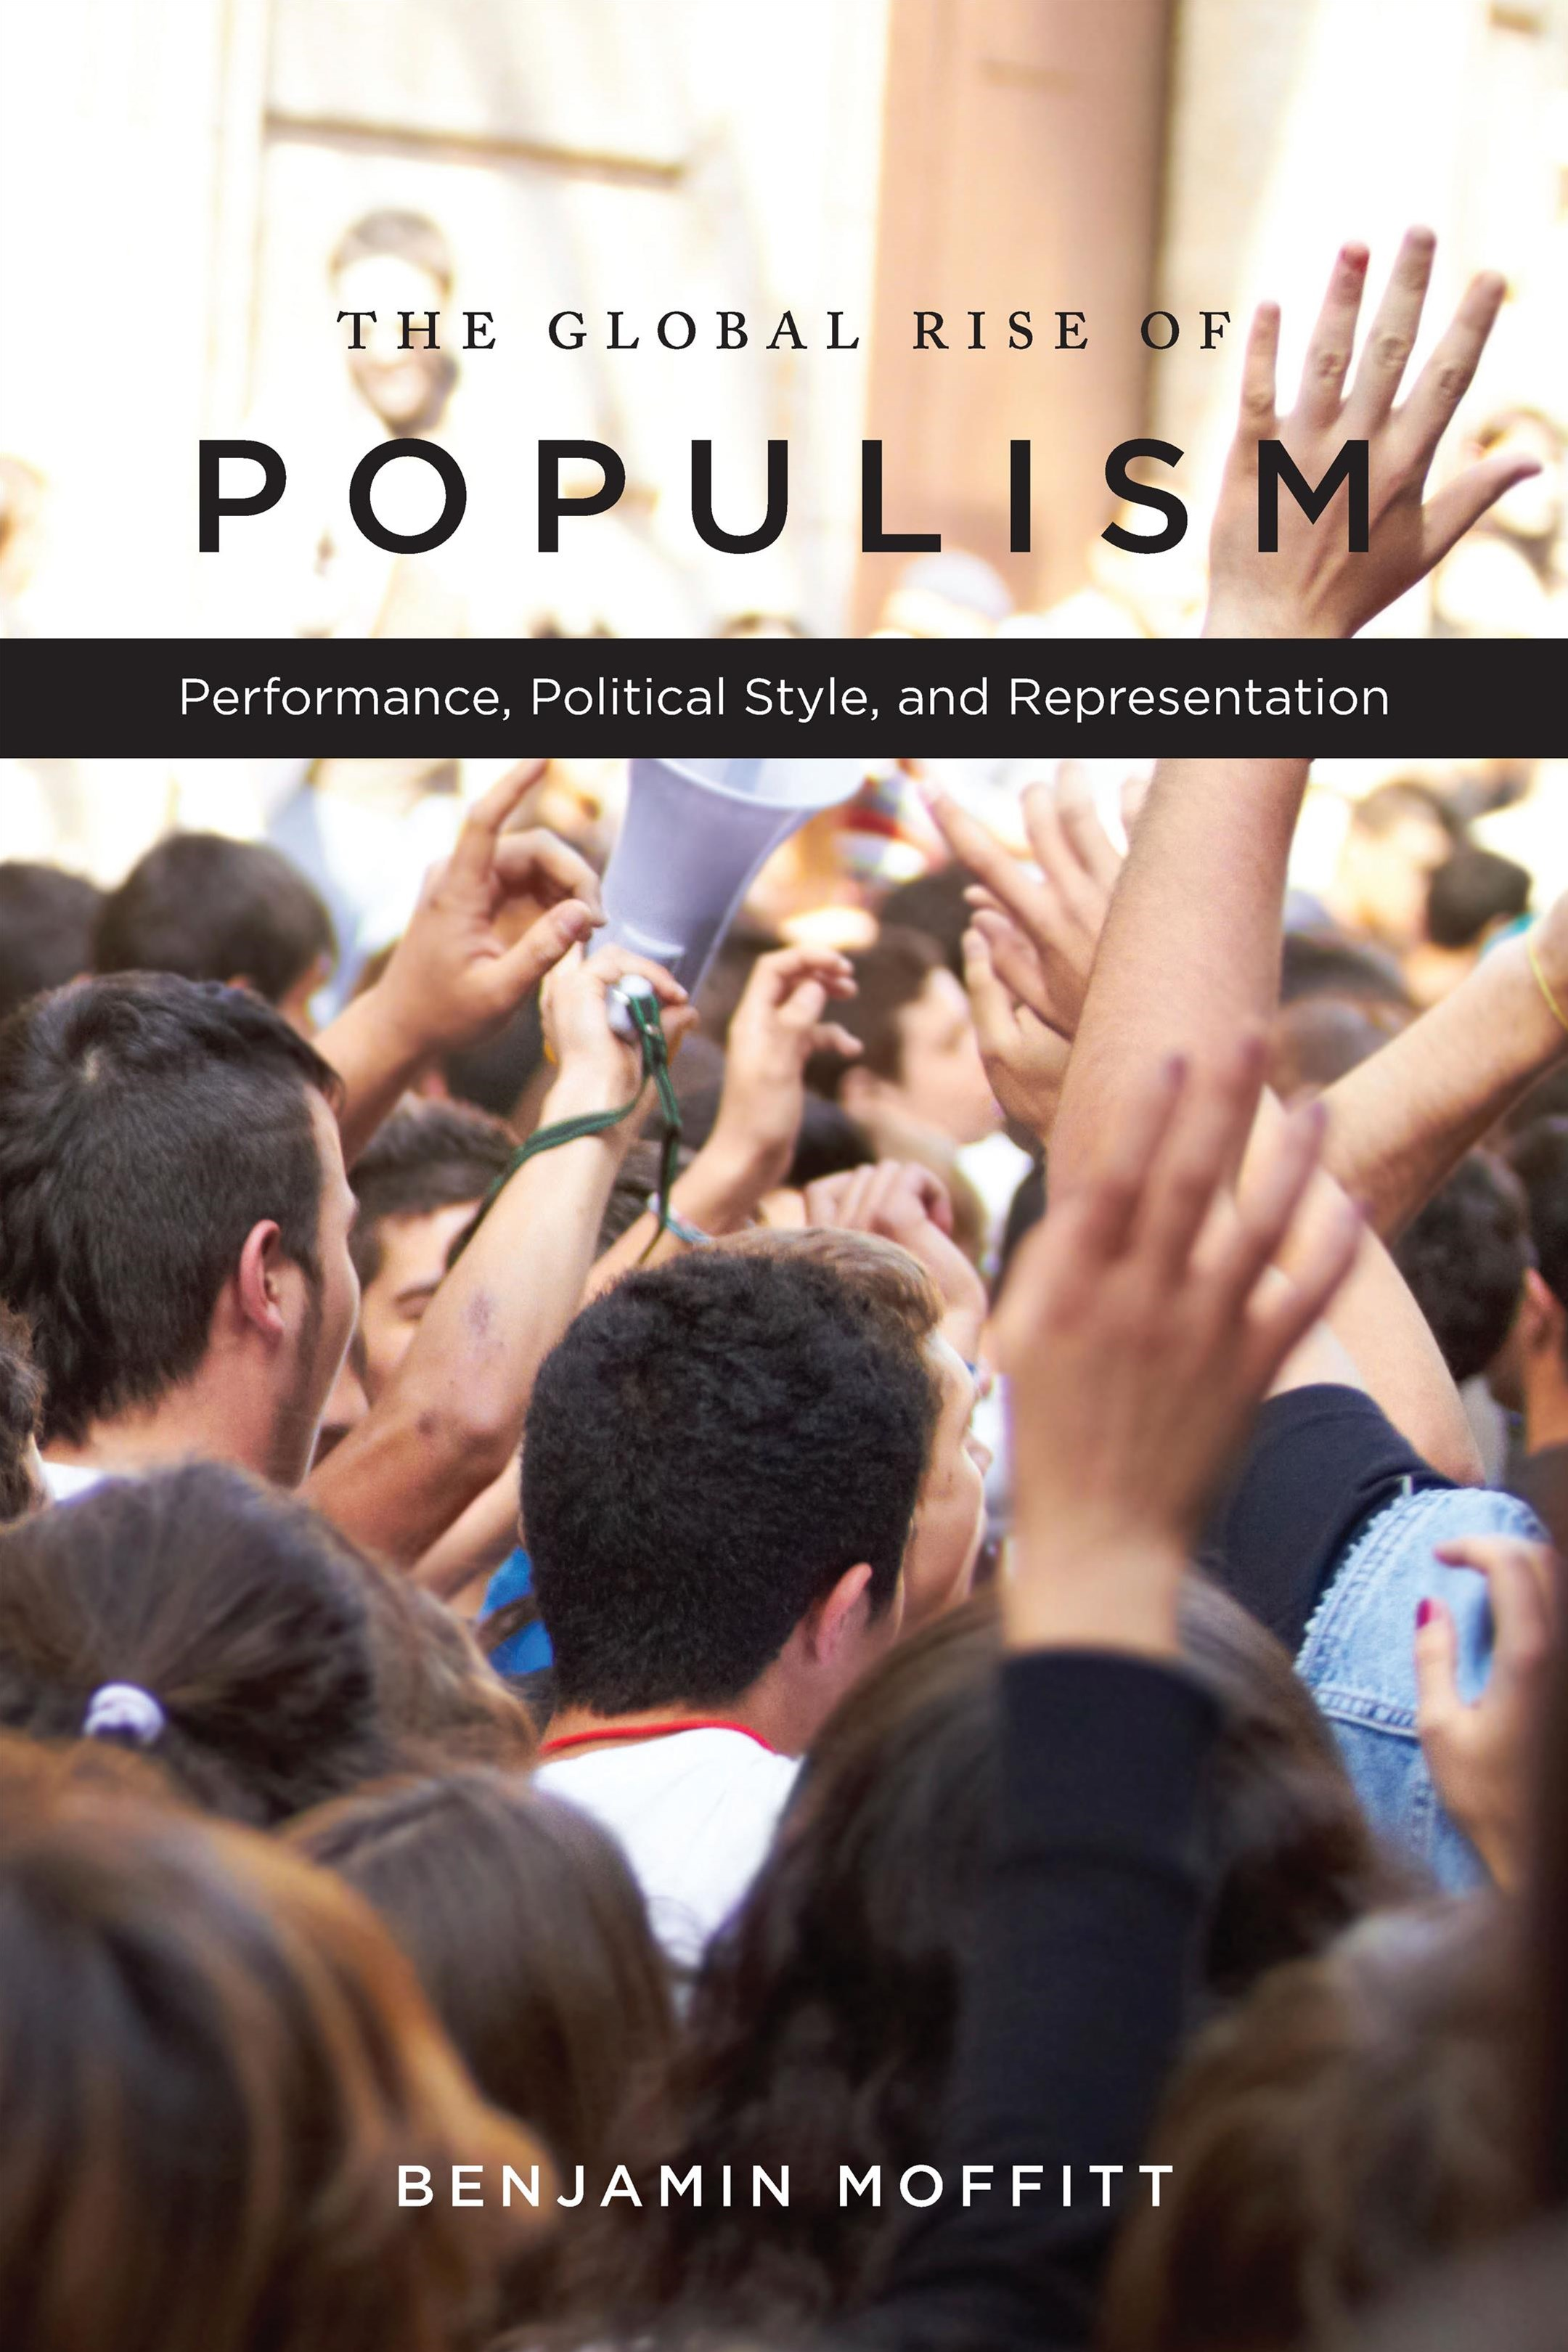 Global Rise of Populism